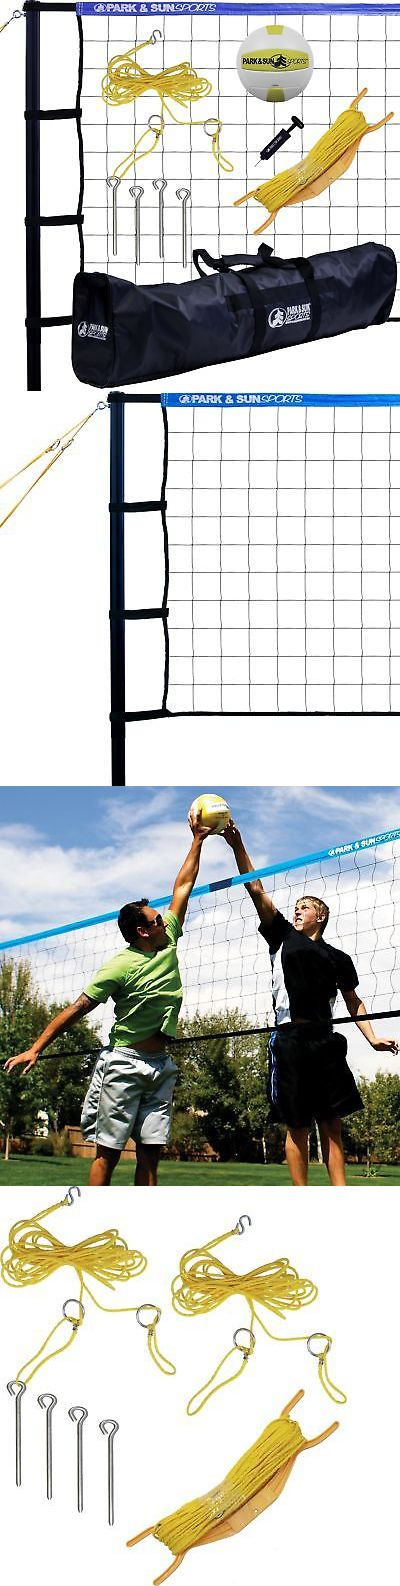 Nets 159131: Park And Sun Sports Tournament 179: Portable Outdoor Volleyball Net System Blue -> BUY IT NOW ONLY: $462.43 on eBay!